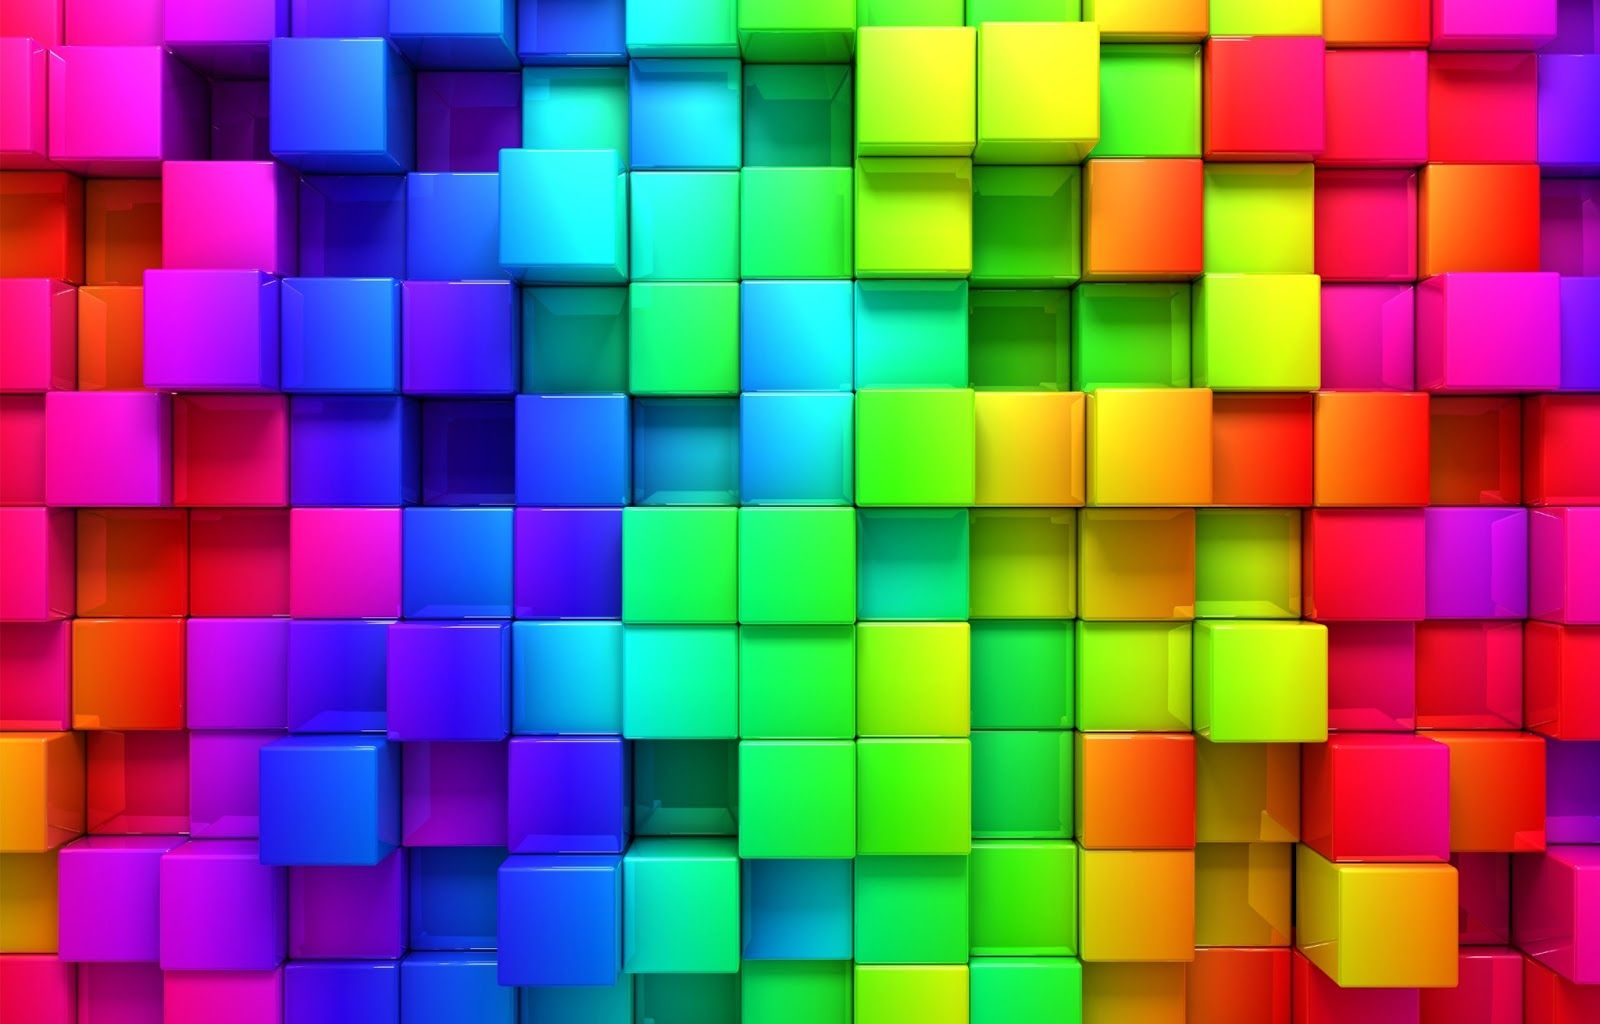 Get More Covers Dps And Wallpapers Rainbow Wallpaper Abstract Wallpaper Colorful Wallpaper